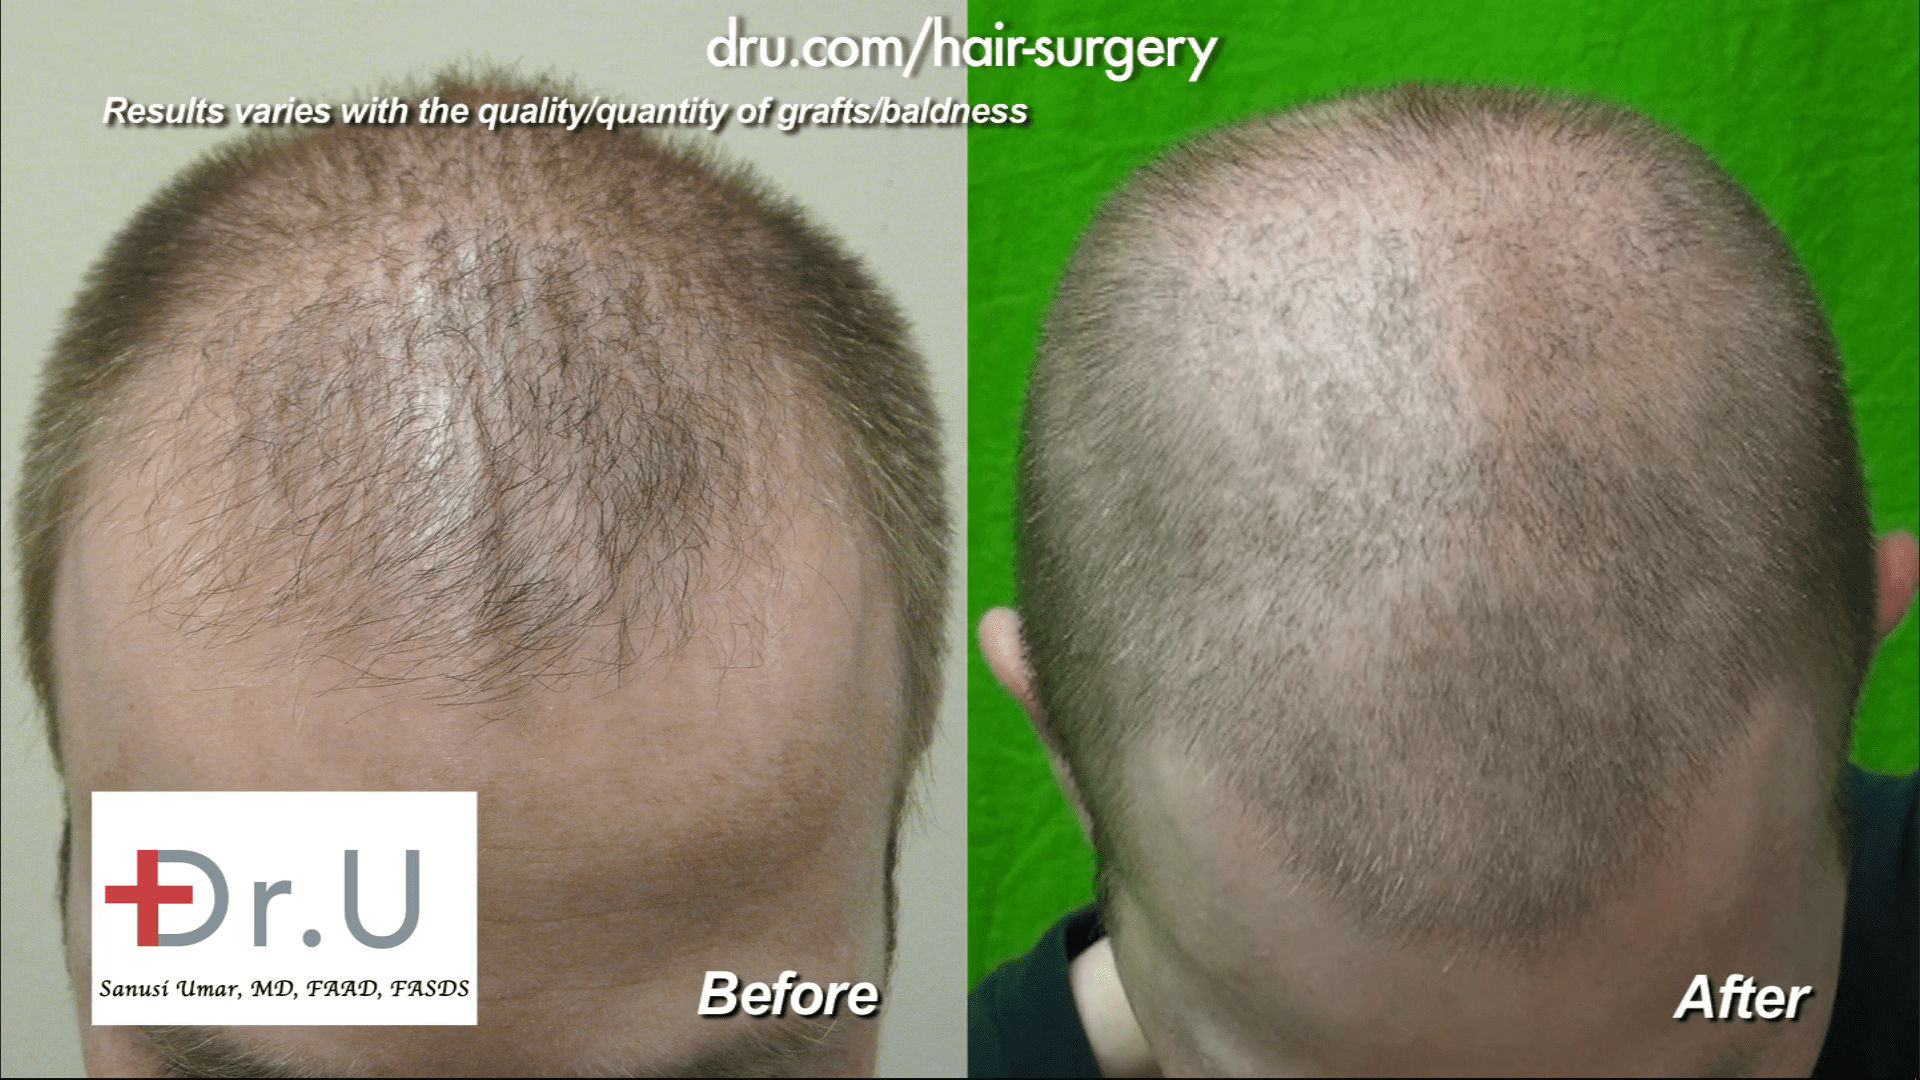 How much is a good hair transplant? Hair restoration price is determined by the needs and goals of the patient and method used (such as a hair FUE).